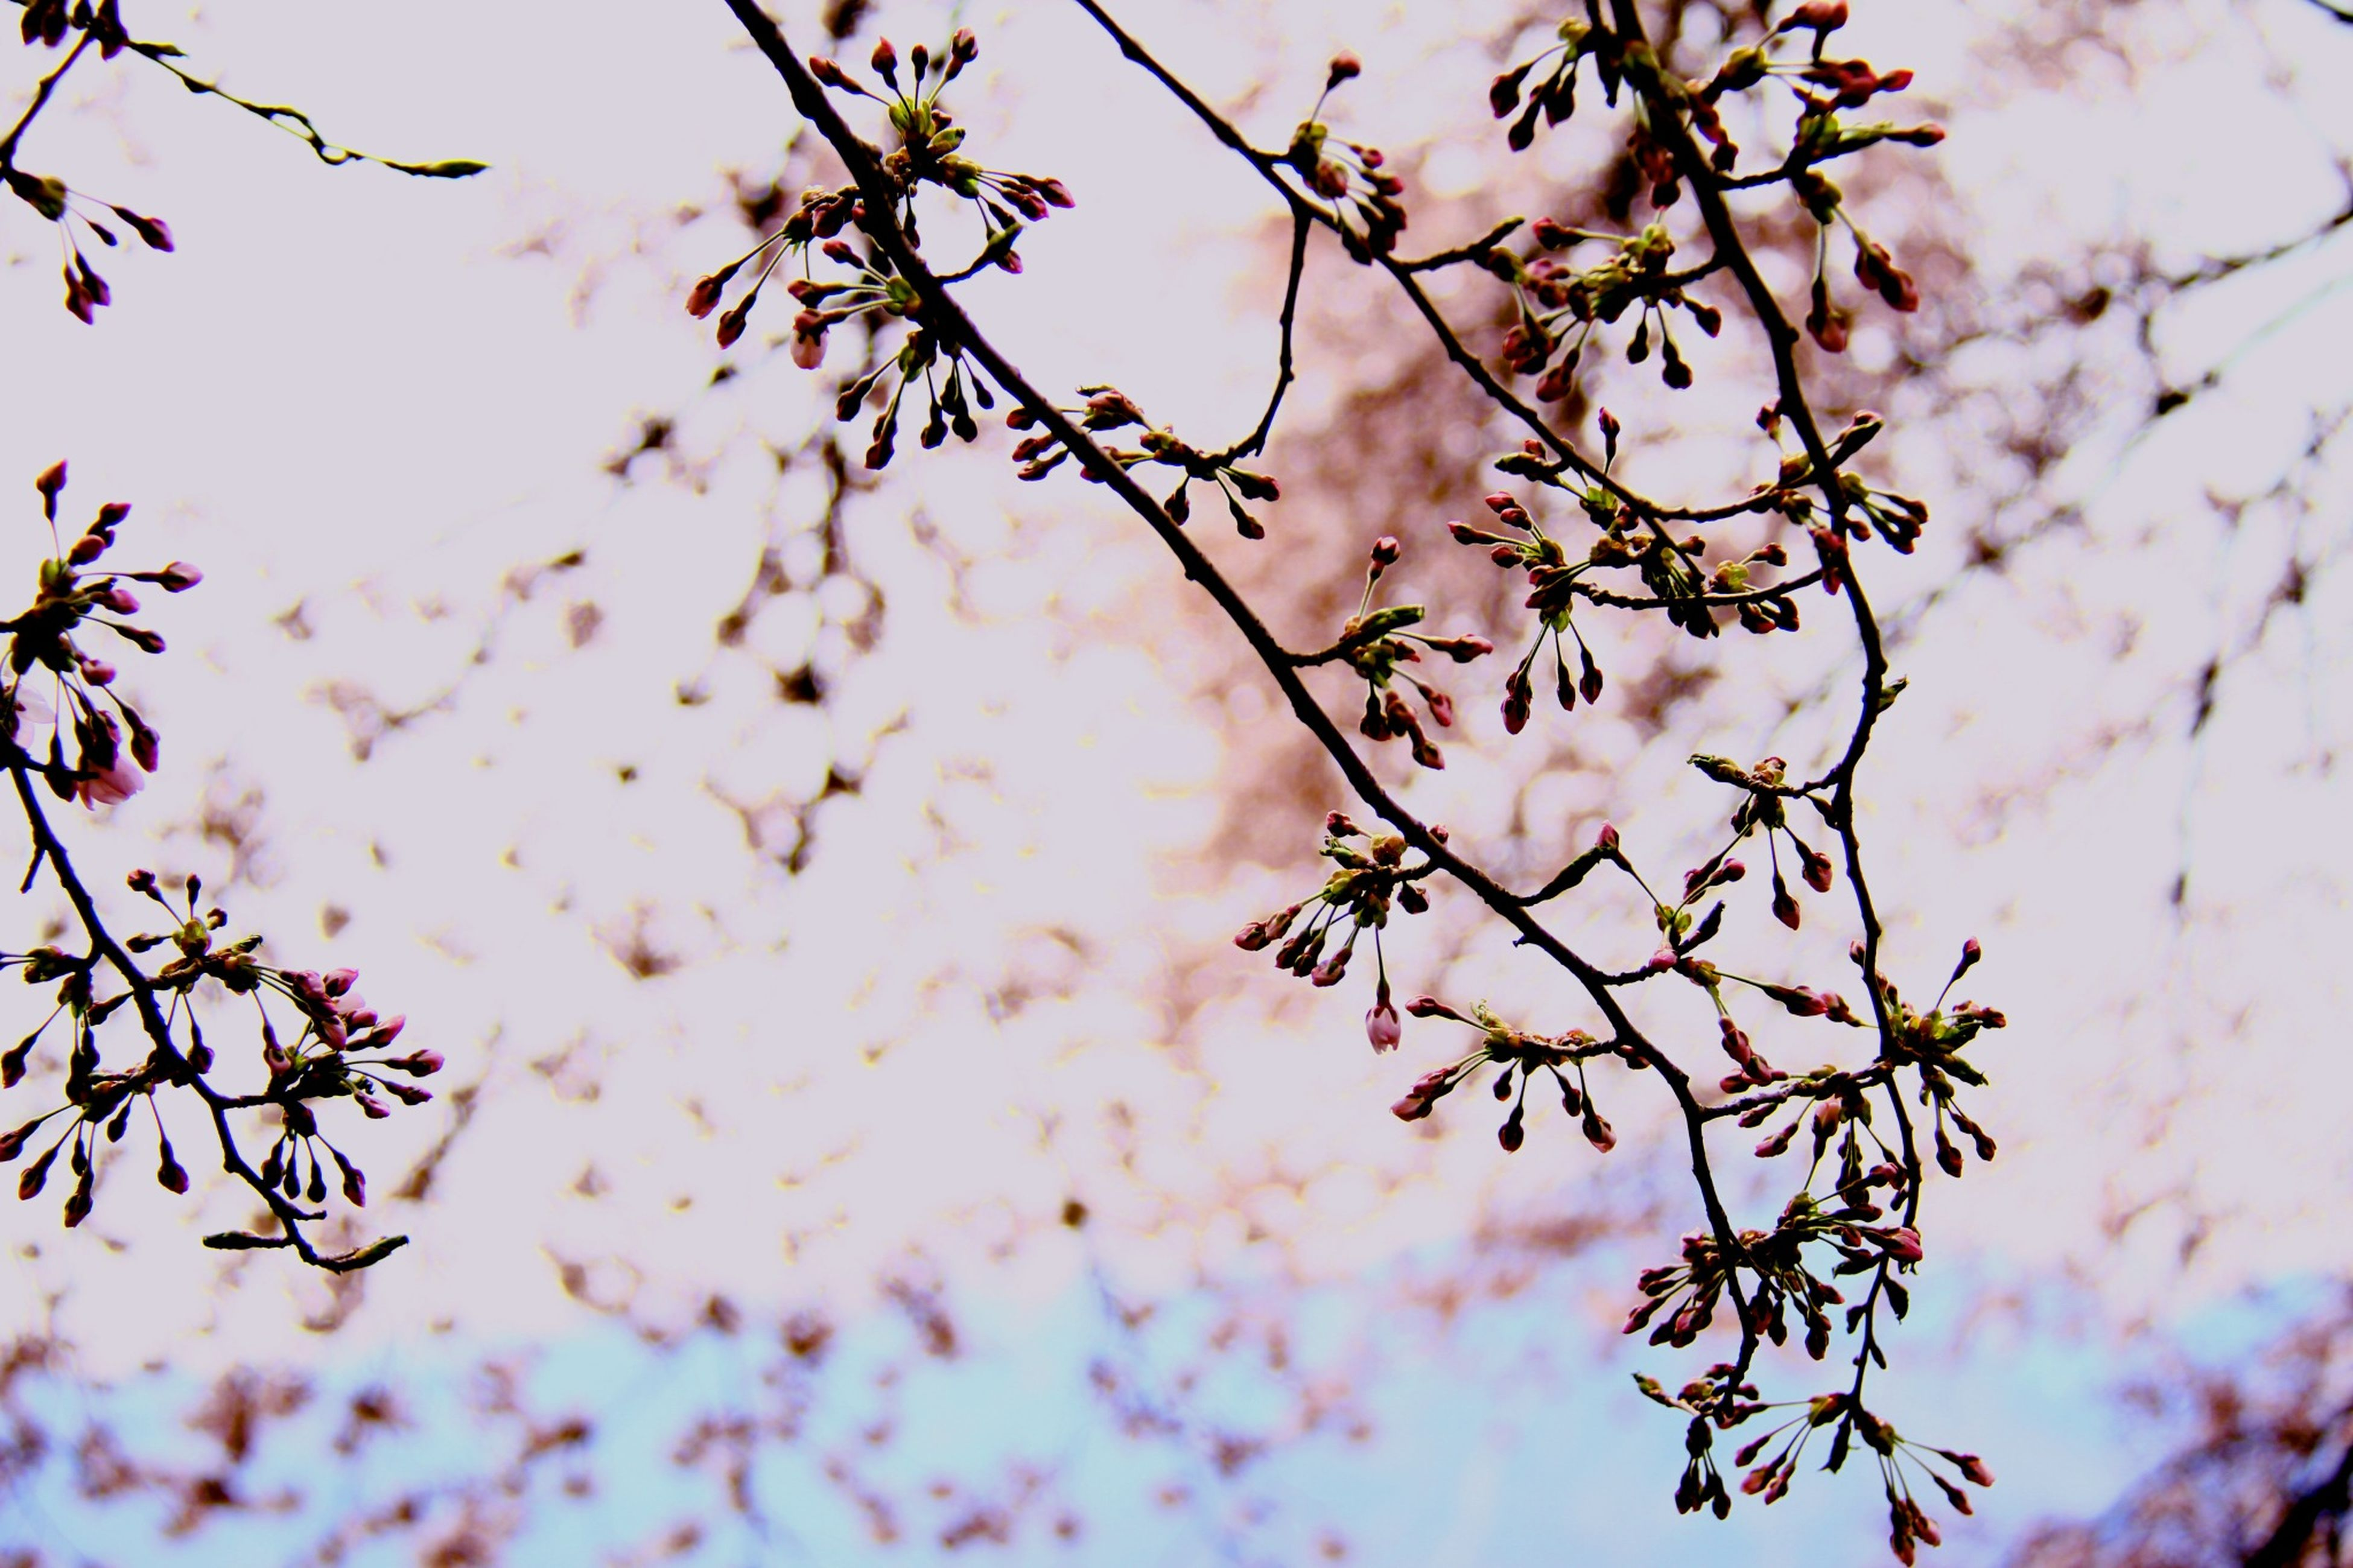 branch, growth, twig, tree, focus on foreground, nature, close-up, leaf, plant, beauty in nature, freshness, season, stem, low angle view, selective focus, sky, autumn, tranquility, outdoors, flower